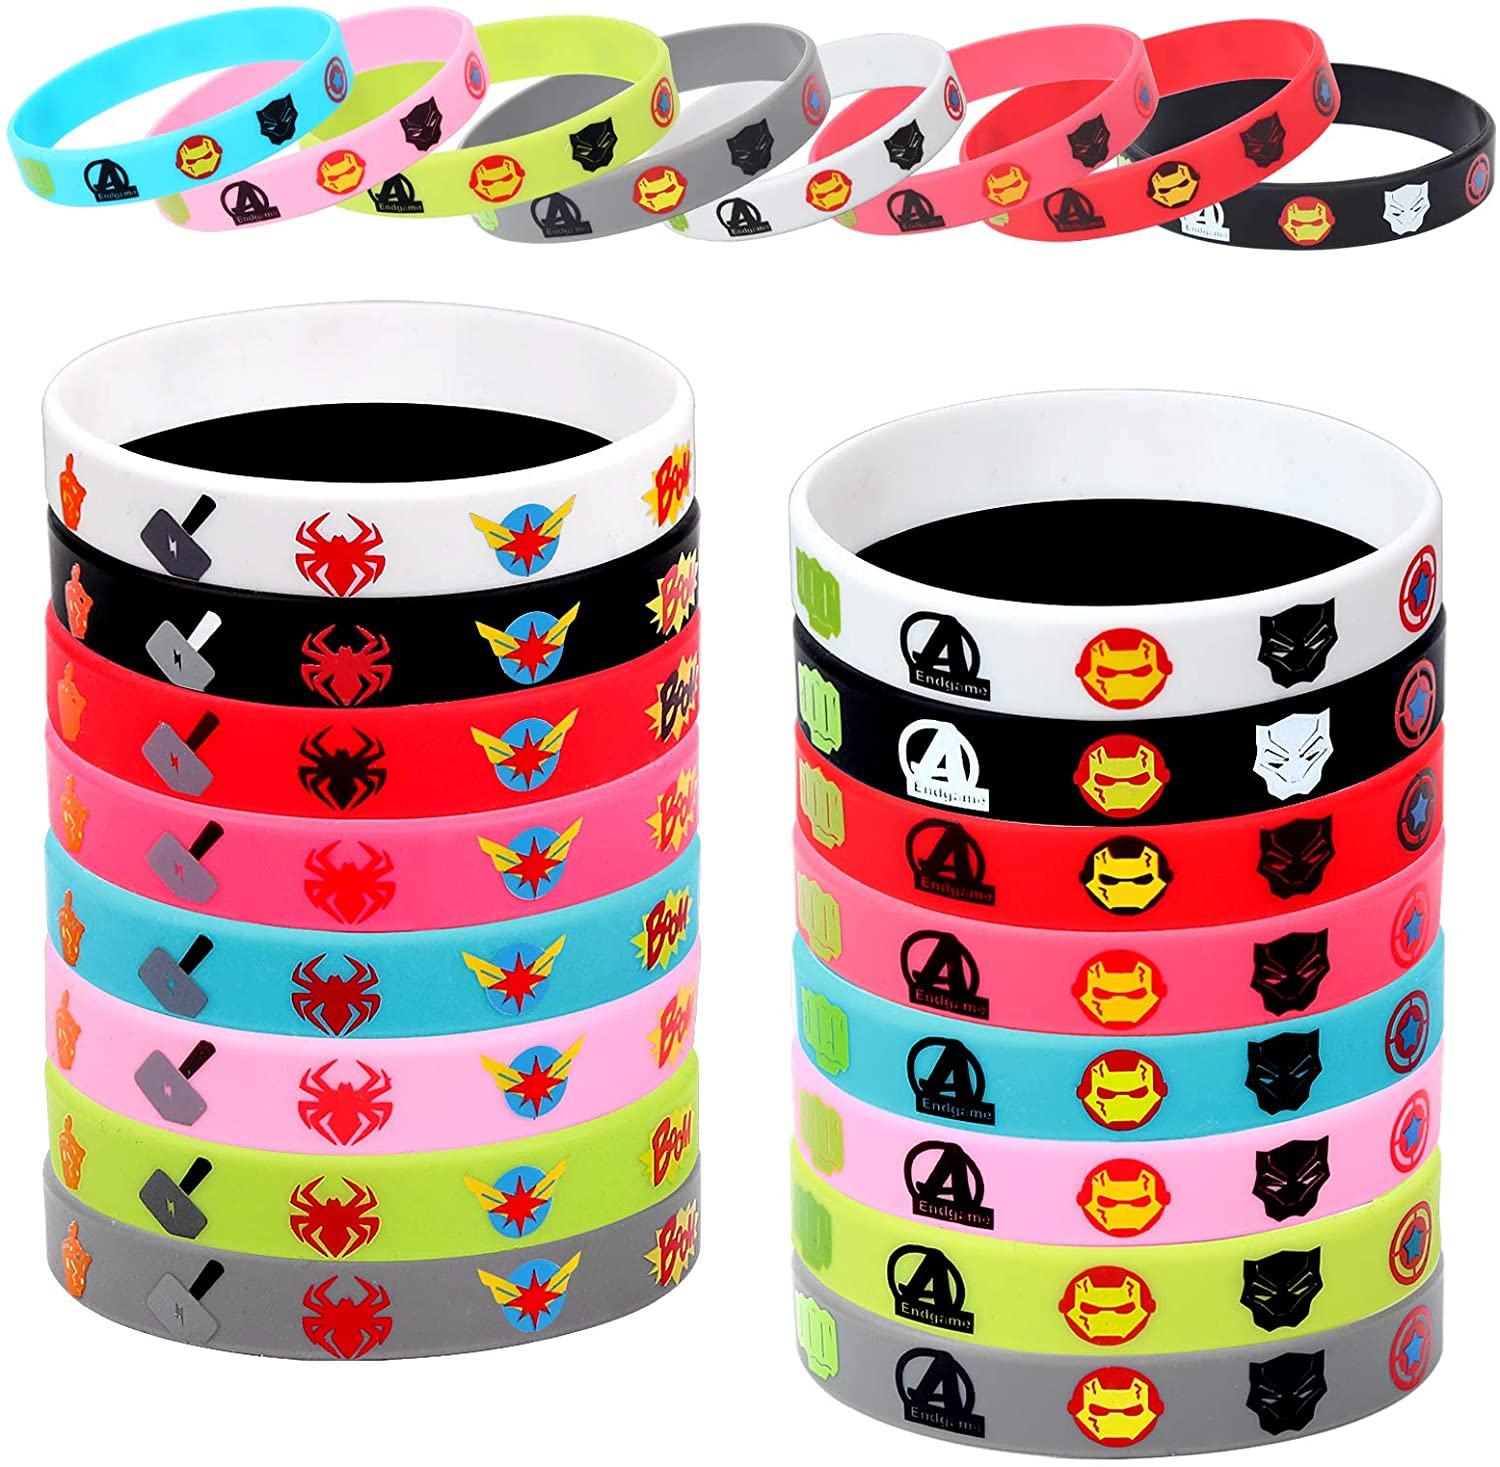 32pcs Superhero Bracelets - Avengers Toys Rubber Wristbands for Kids Boys Girls Super Hero Costume Birthday Party Supplies Favors - Cartoon Game Decorations Carnival Prizes Gift